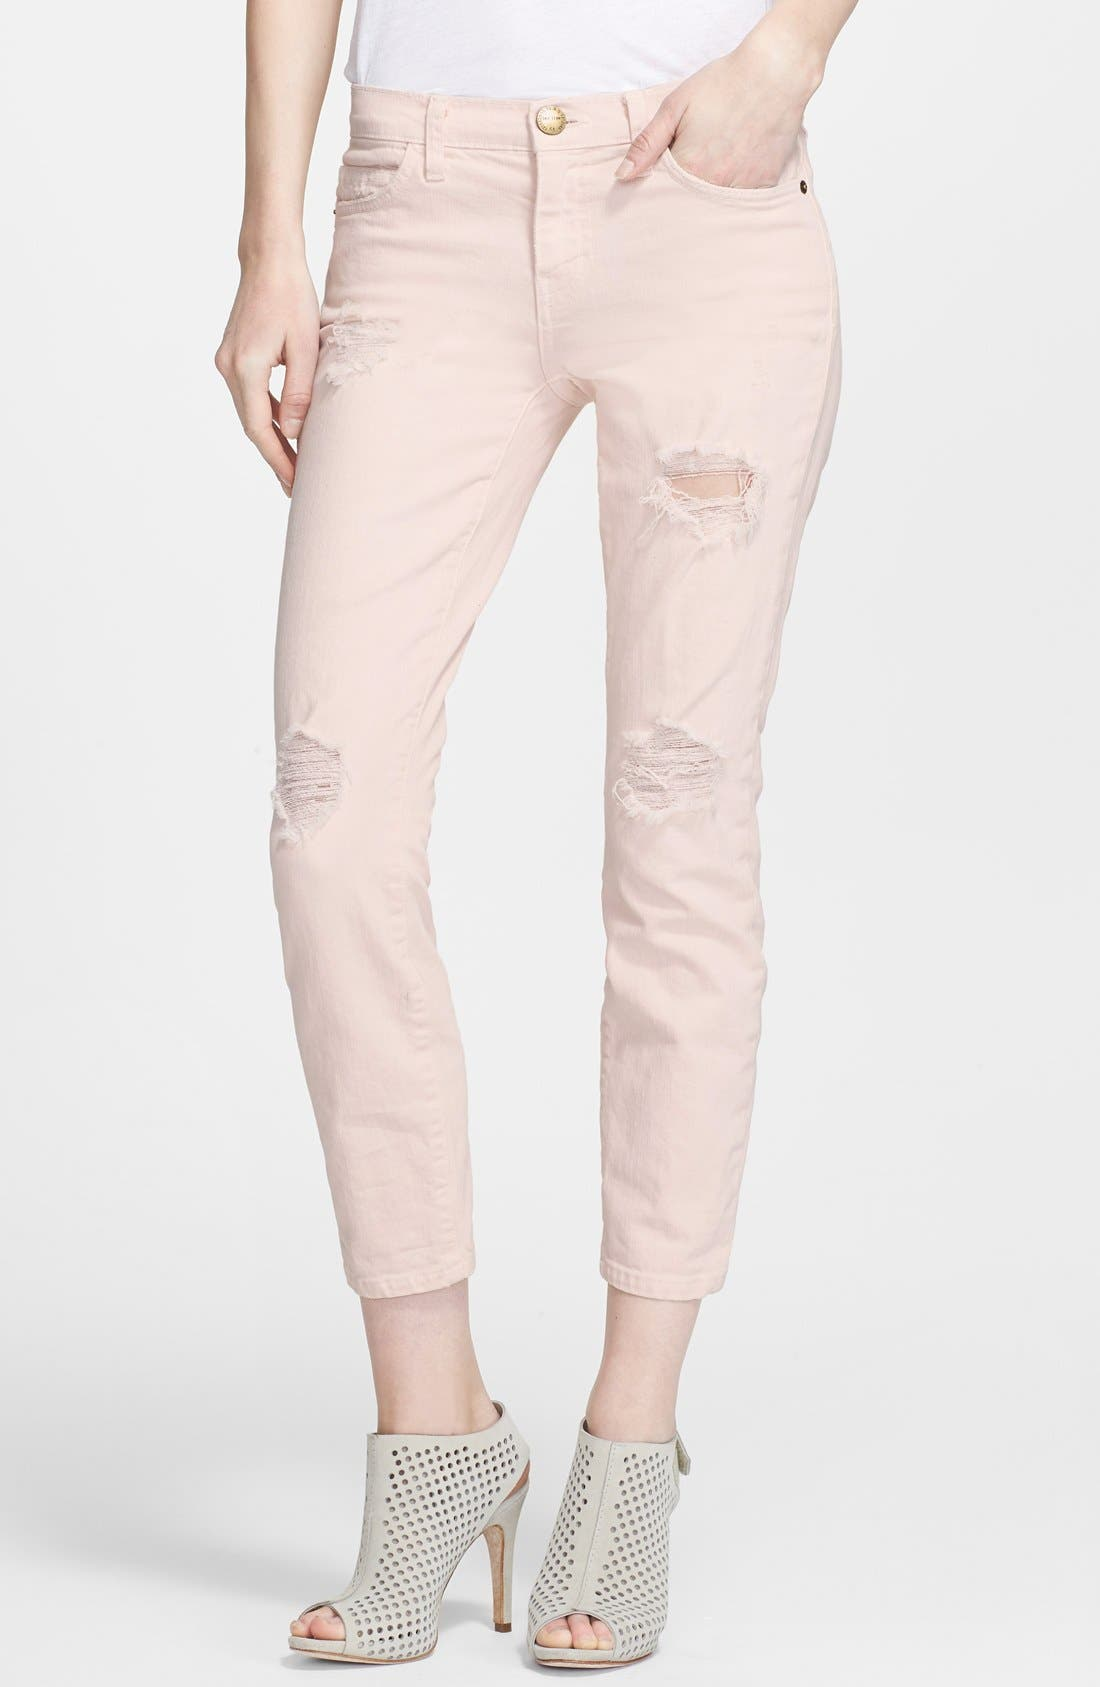 Alternate Image 1 Selected - Current/Elliott 'The Stiletto' Jeans (Dusty Pink)